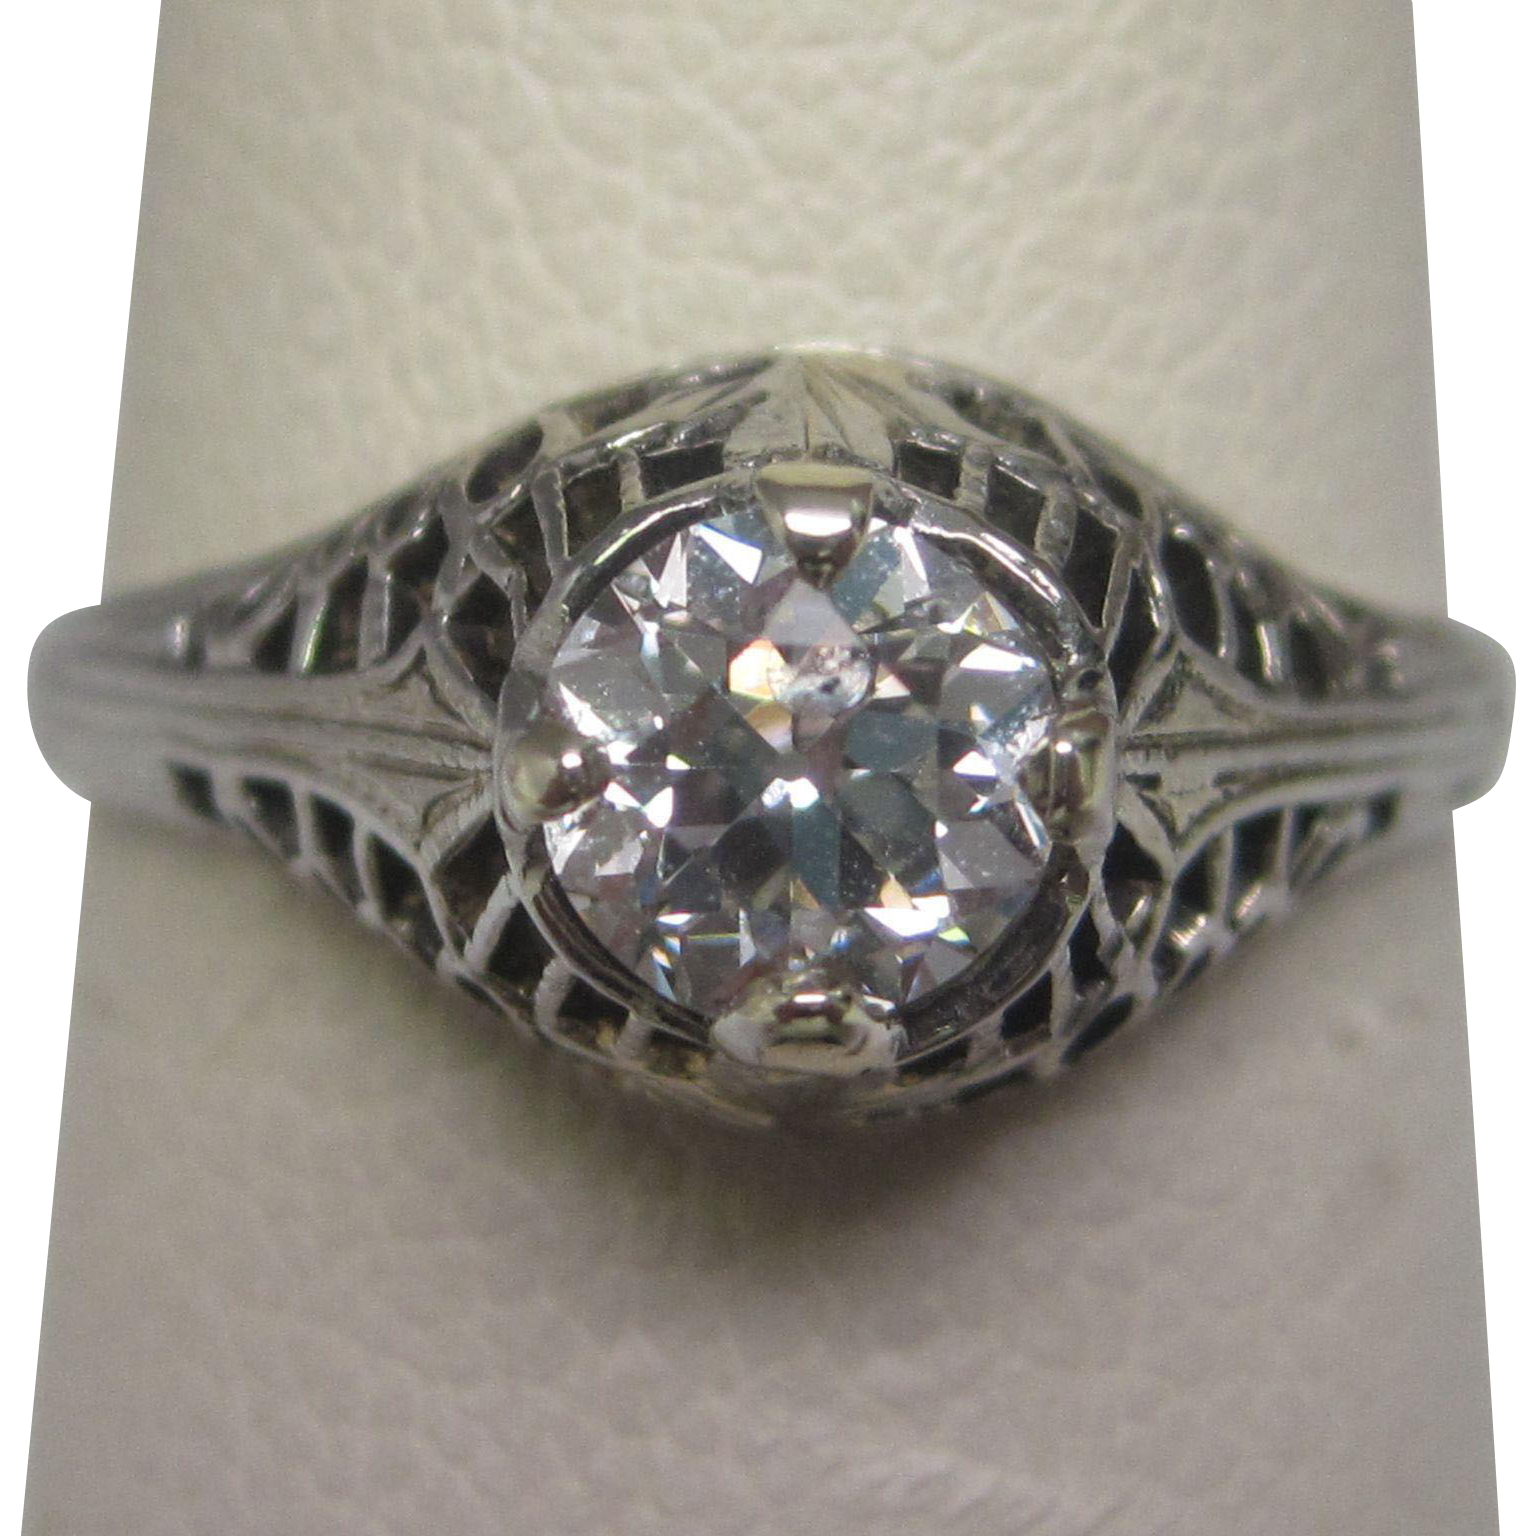 Old European Cut 0.53 ct. Diamond Ring with GIA Report Ca 1920 Original